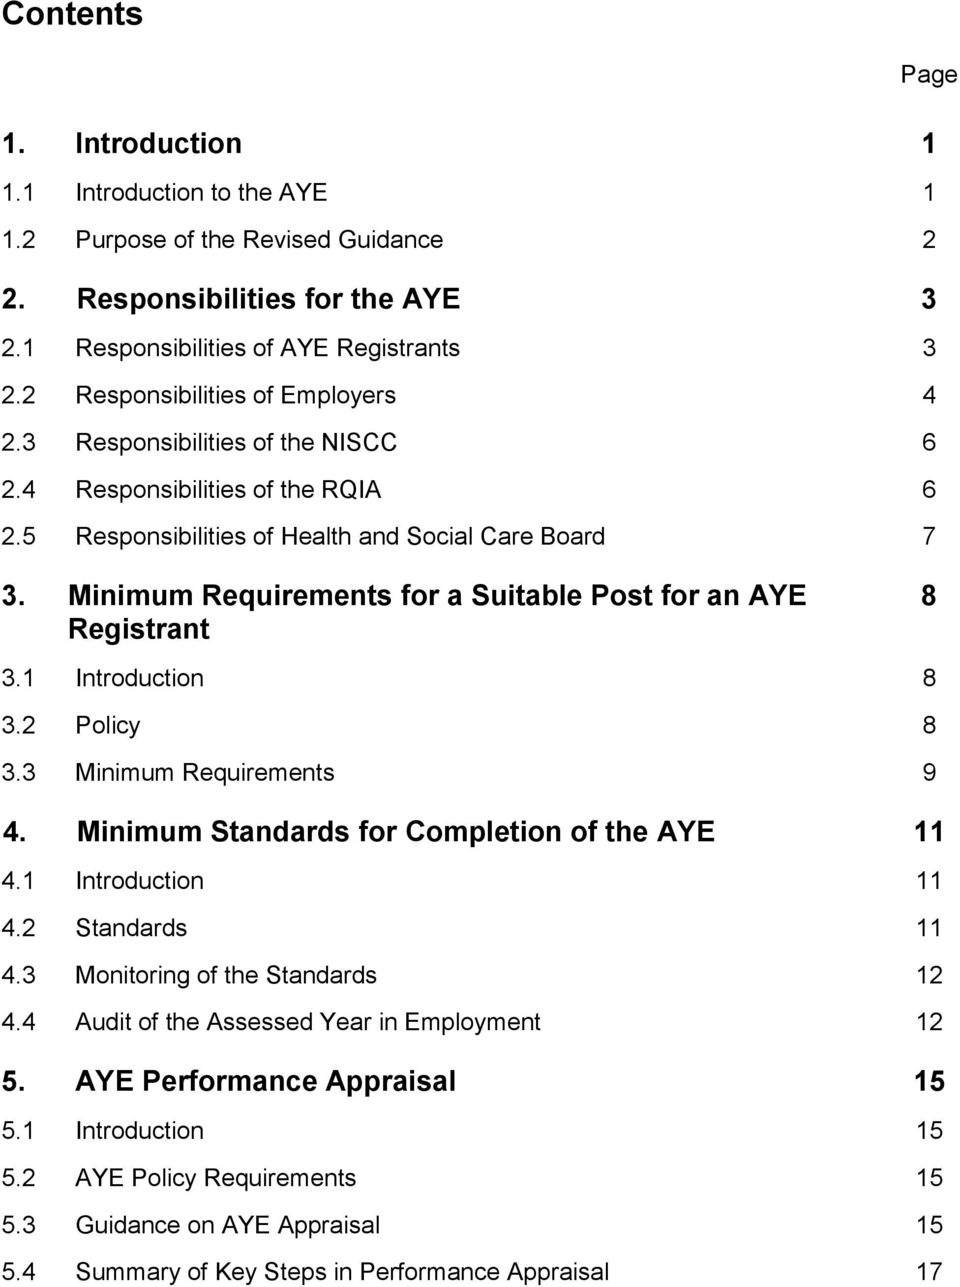 Minimum Requirements for a Suitable Post for an AYE Registrant 8 3.1 Introduction 8 3.2 Policy 8 3.3 Minimum Requirements 9 4. Minimum Standards for Completion of the AYE 11 4.1 Introduction 11 4.